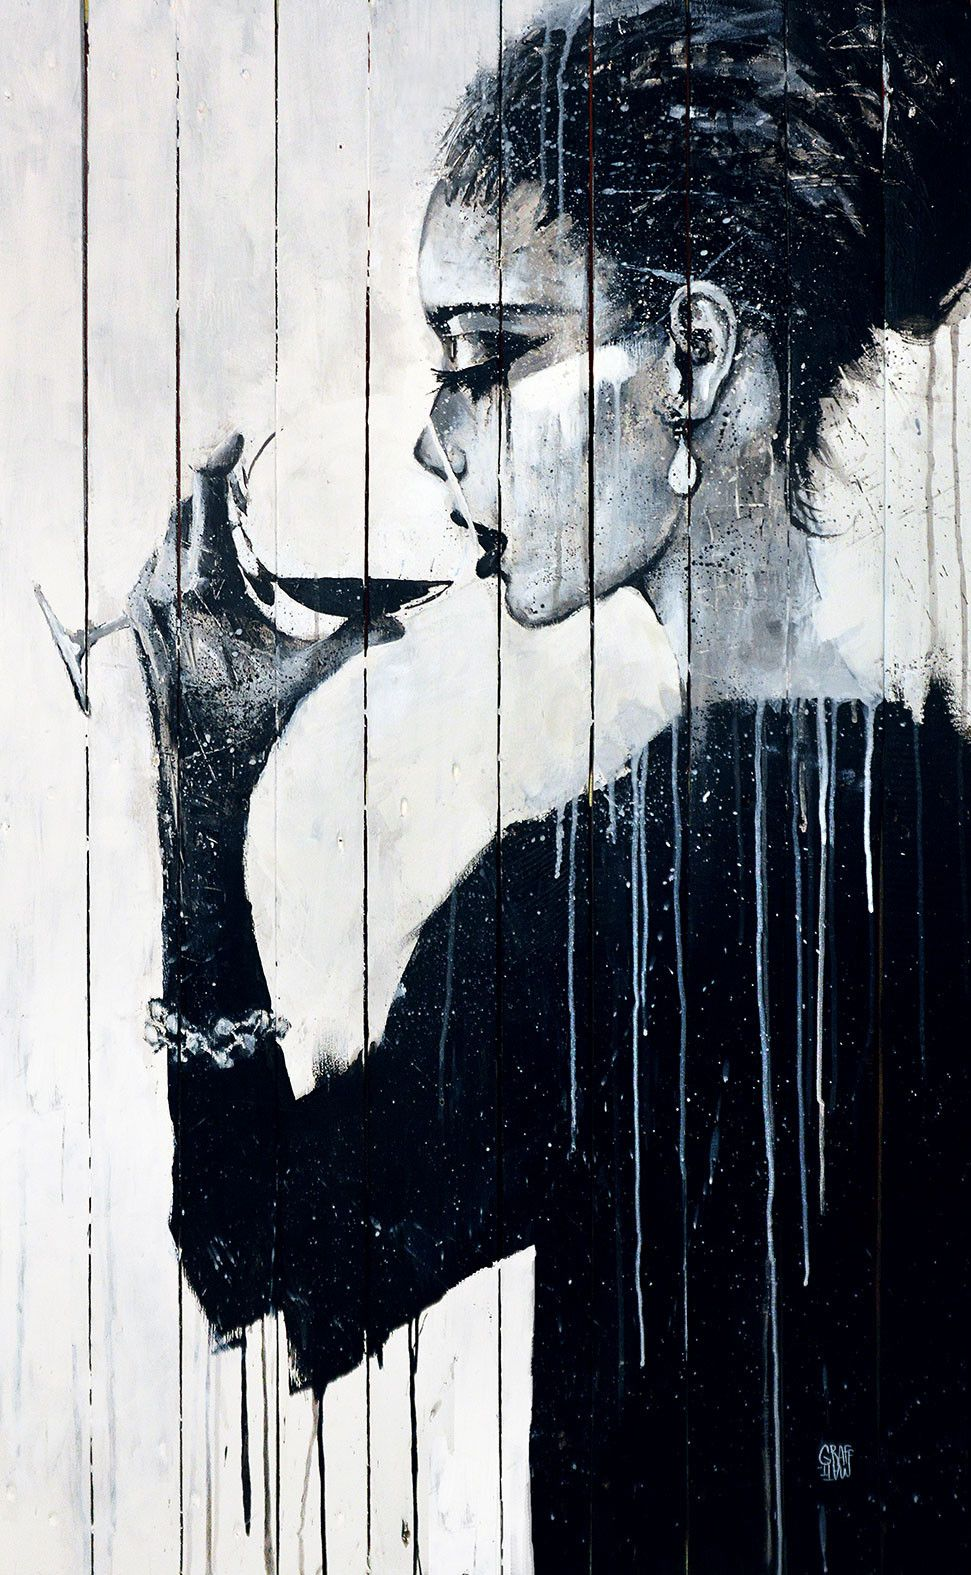 Femme au verre de vin by graffmatt painting graffiti for Painting while drinking wine